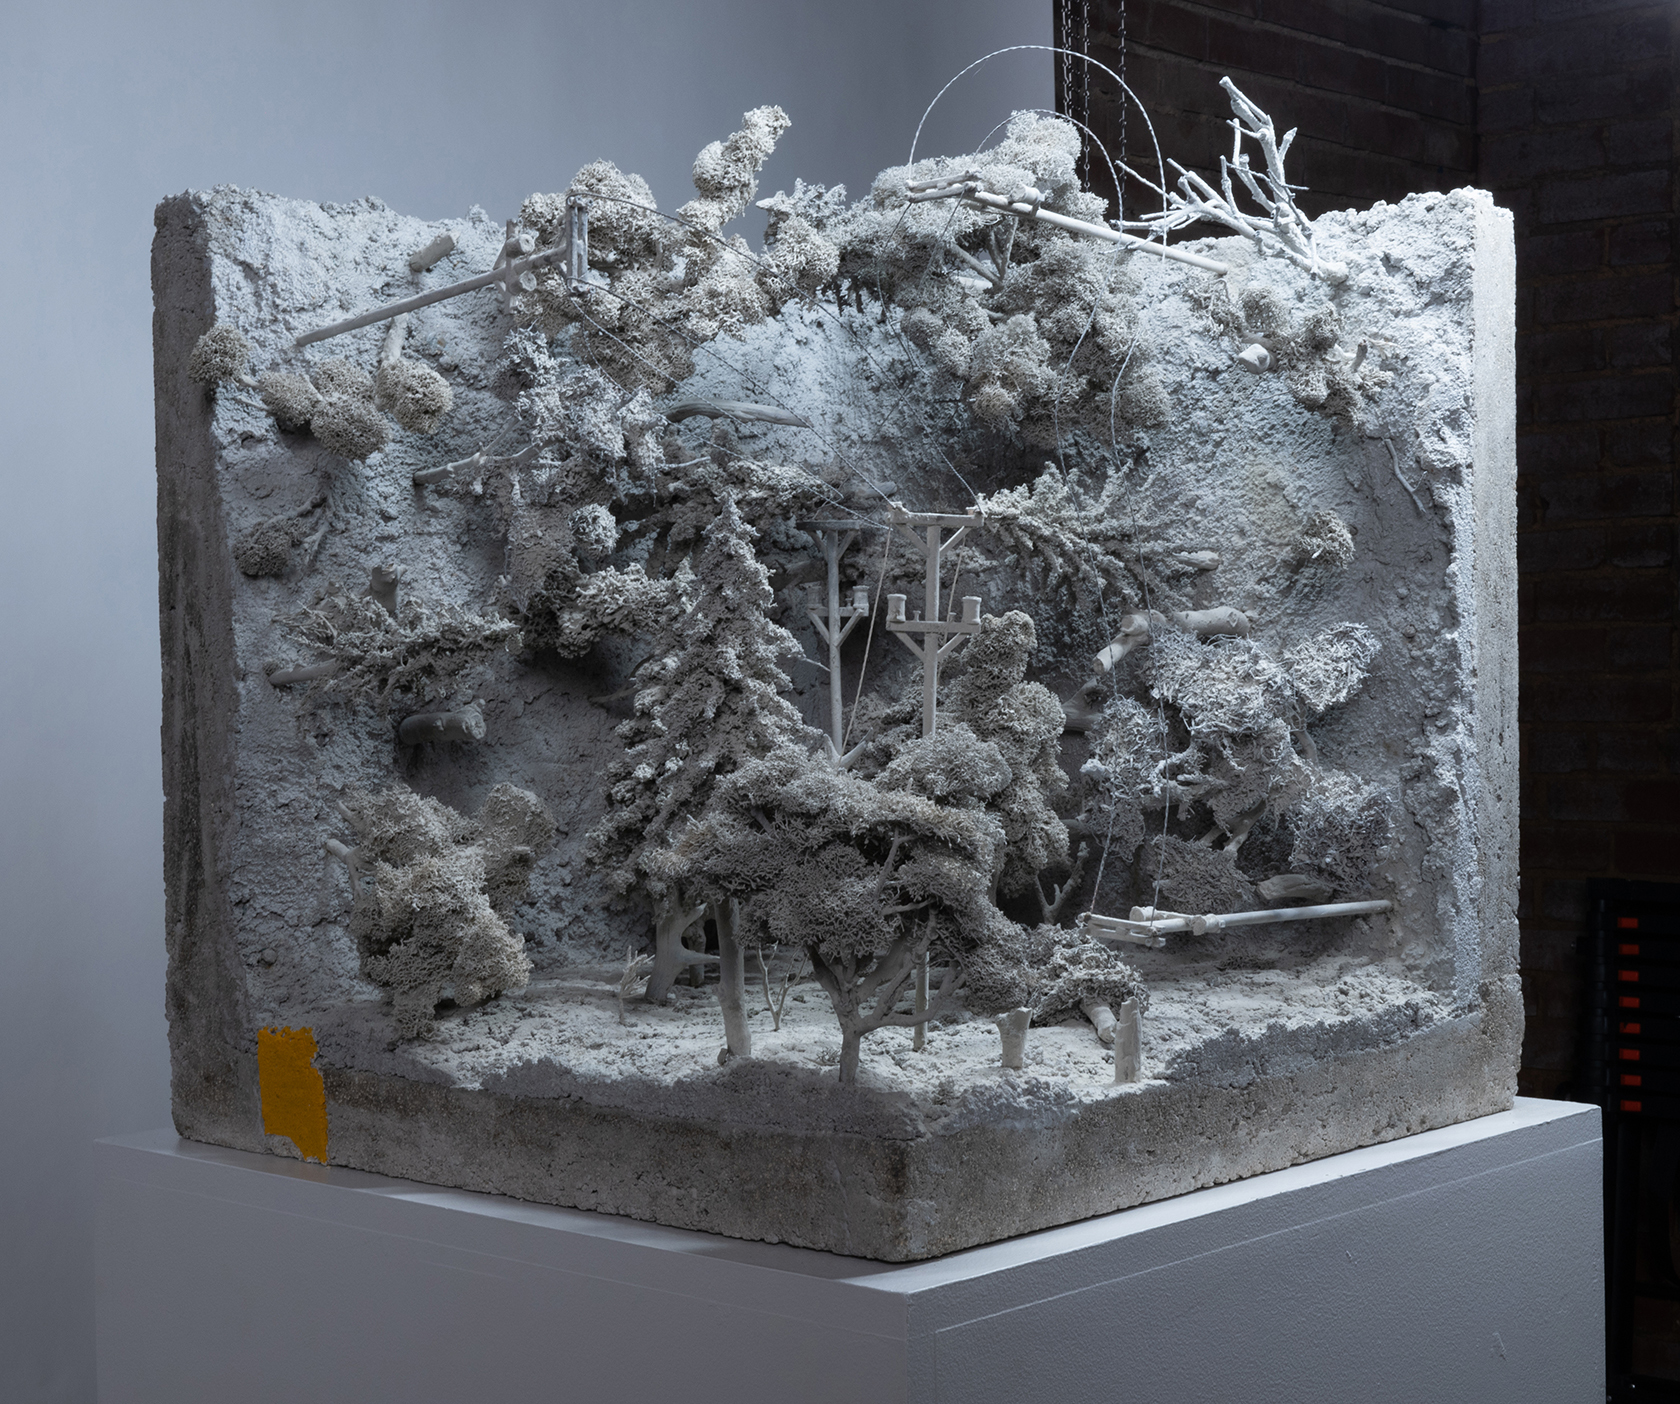 A pale-gray sculpture of a wooded field and electrical lines shows on three interior planes of a cube